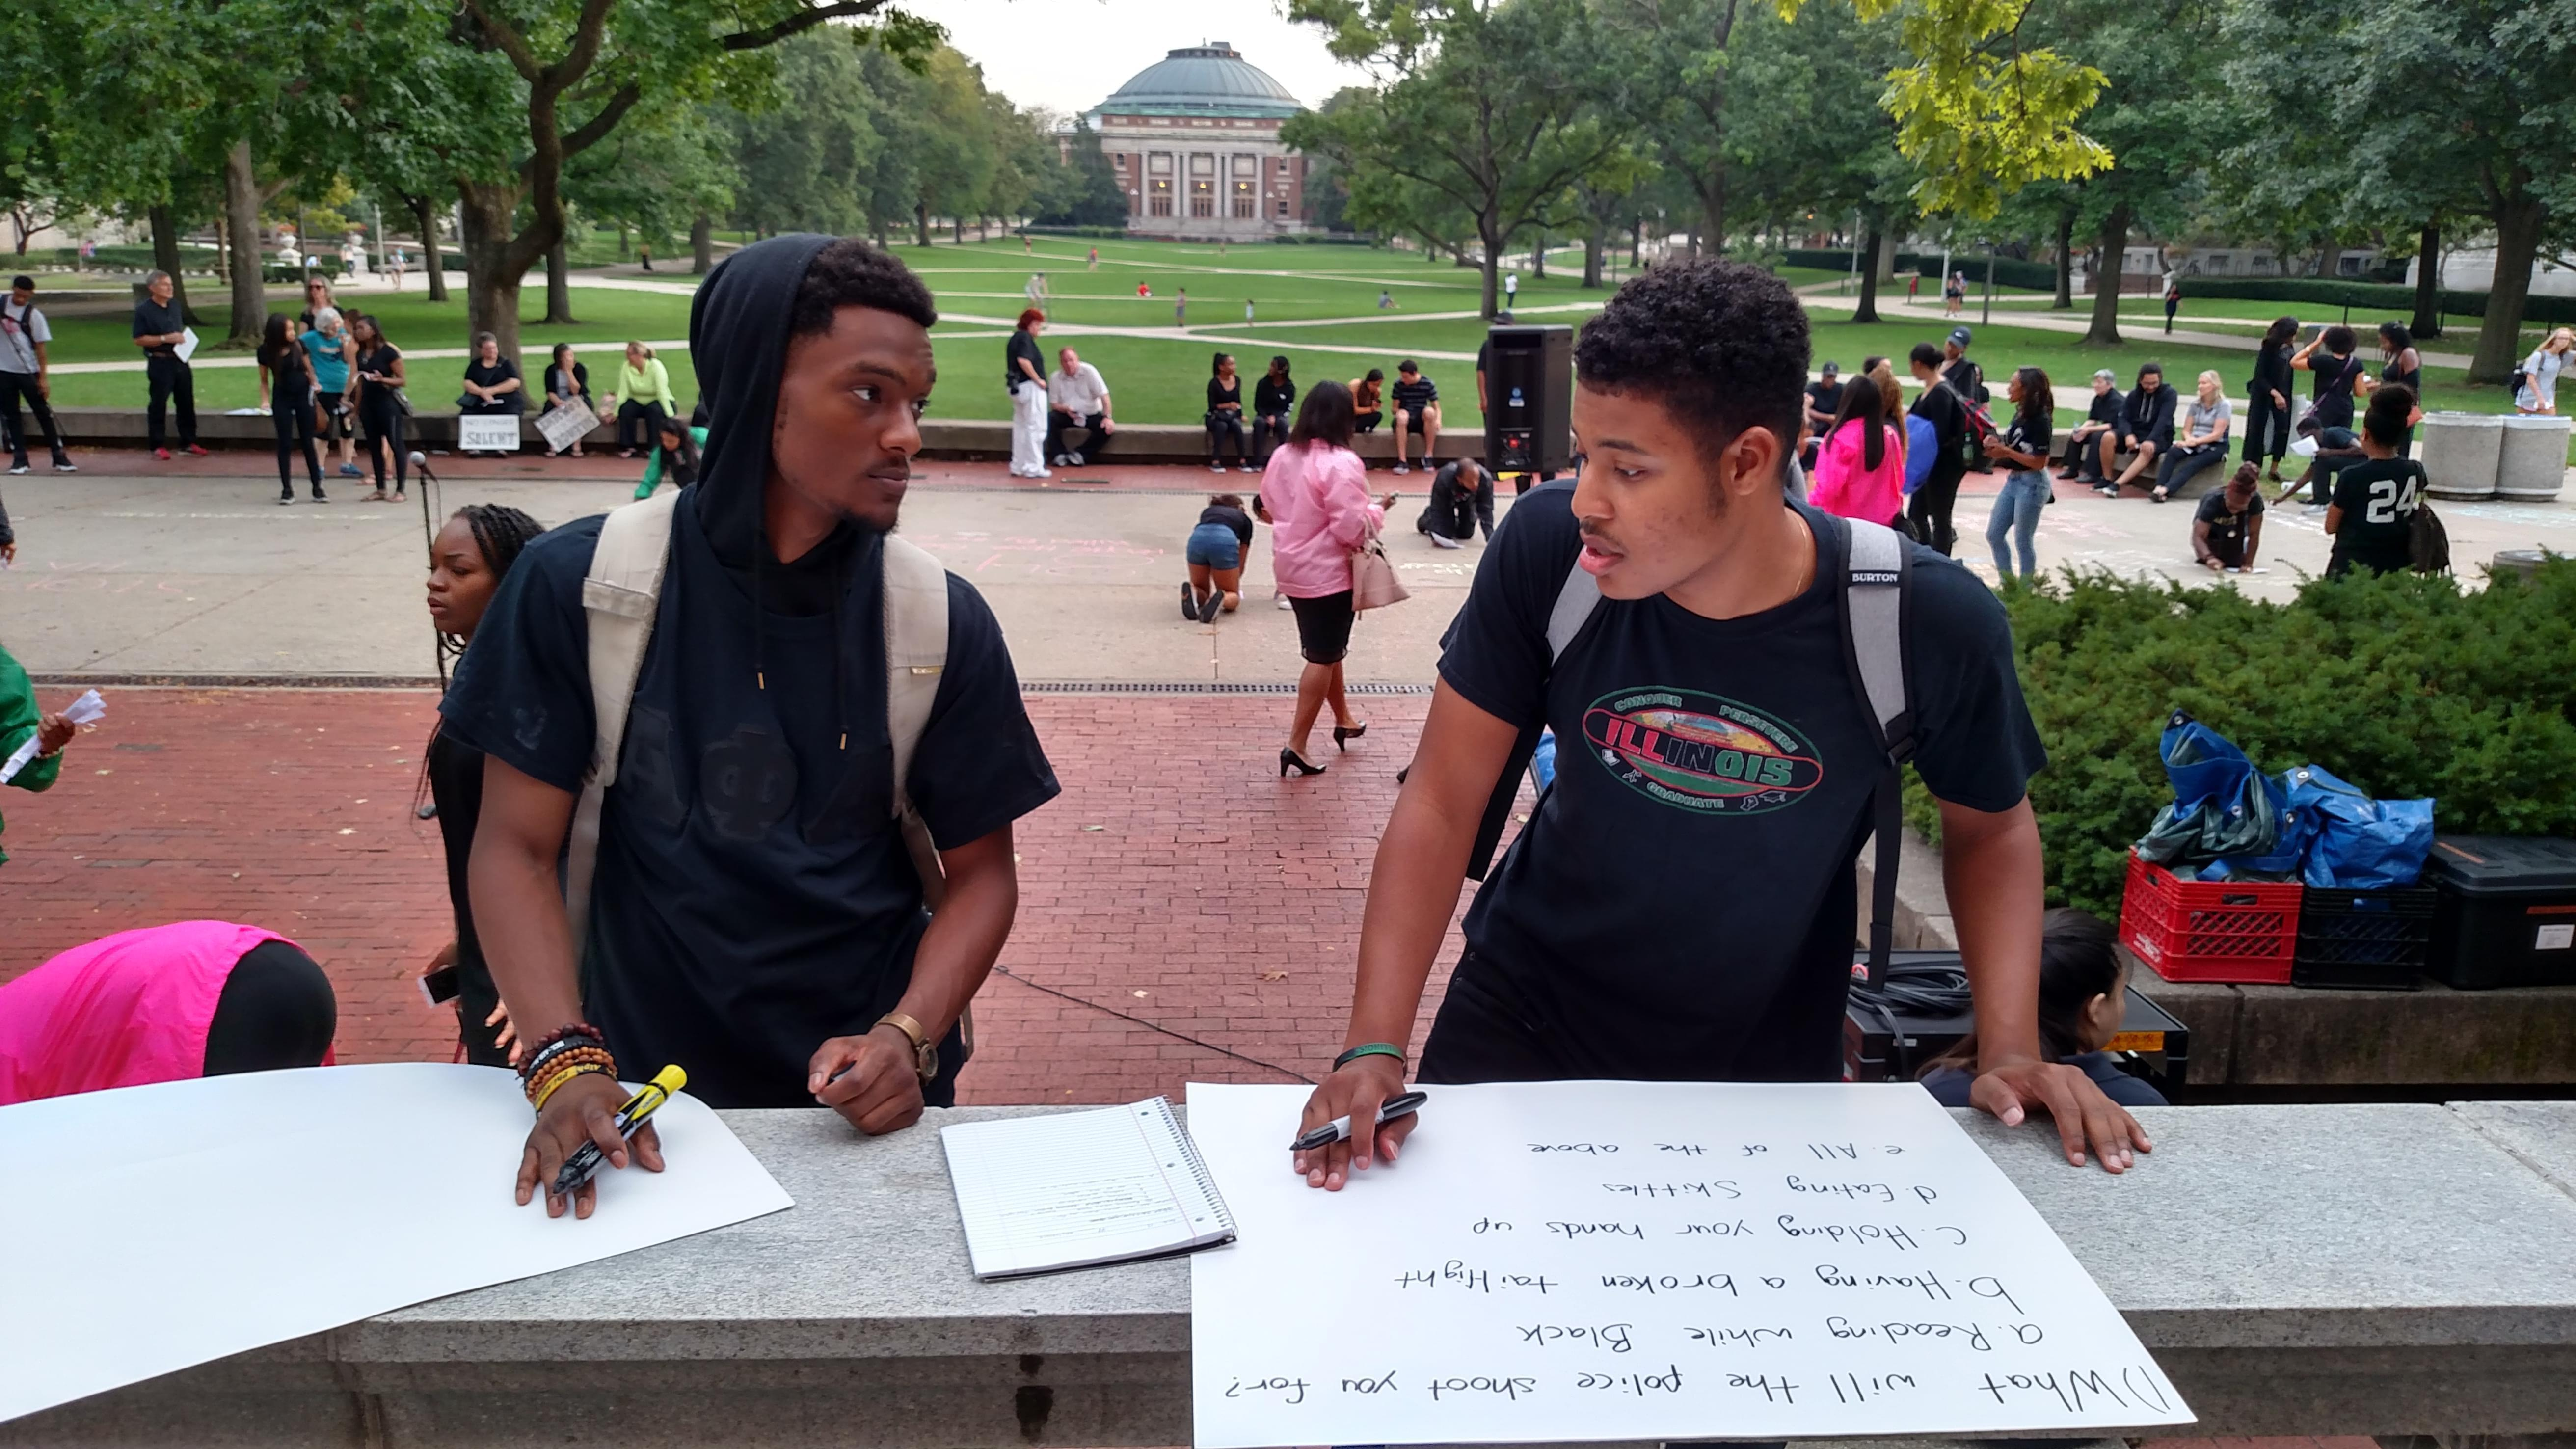 """Undergraduate students Immanuel Campbell and Marques Webster create signs during a """"Call To Action"""" event on the University of Illinois Main Quad on Sunday, September 25, 2016."""